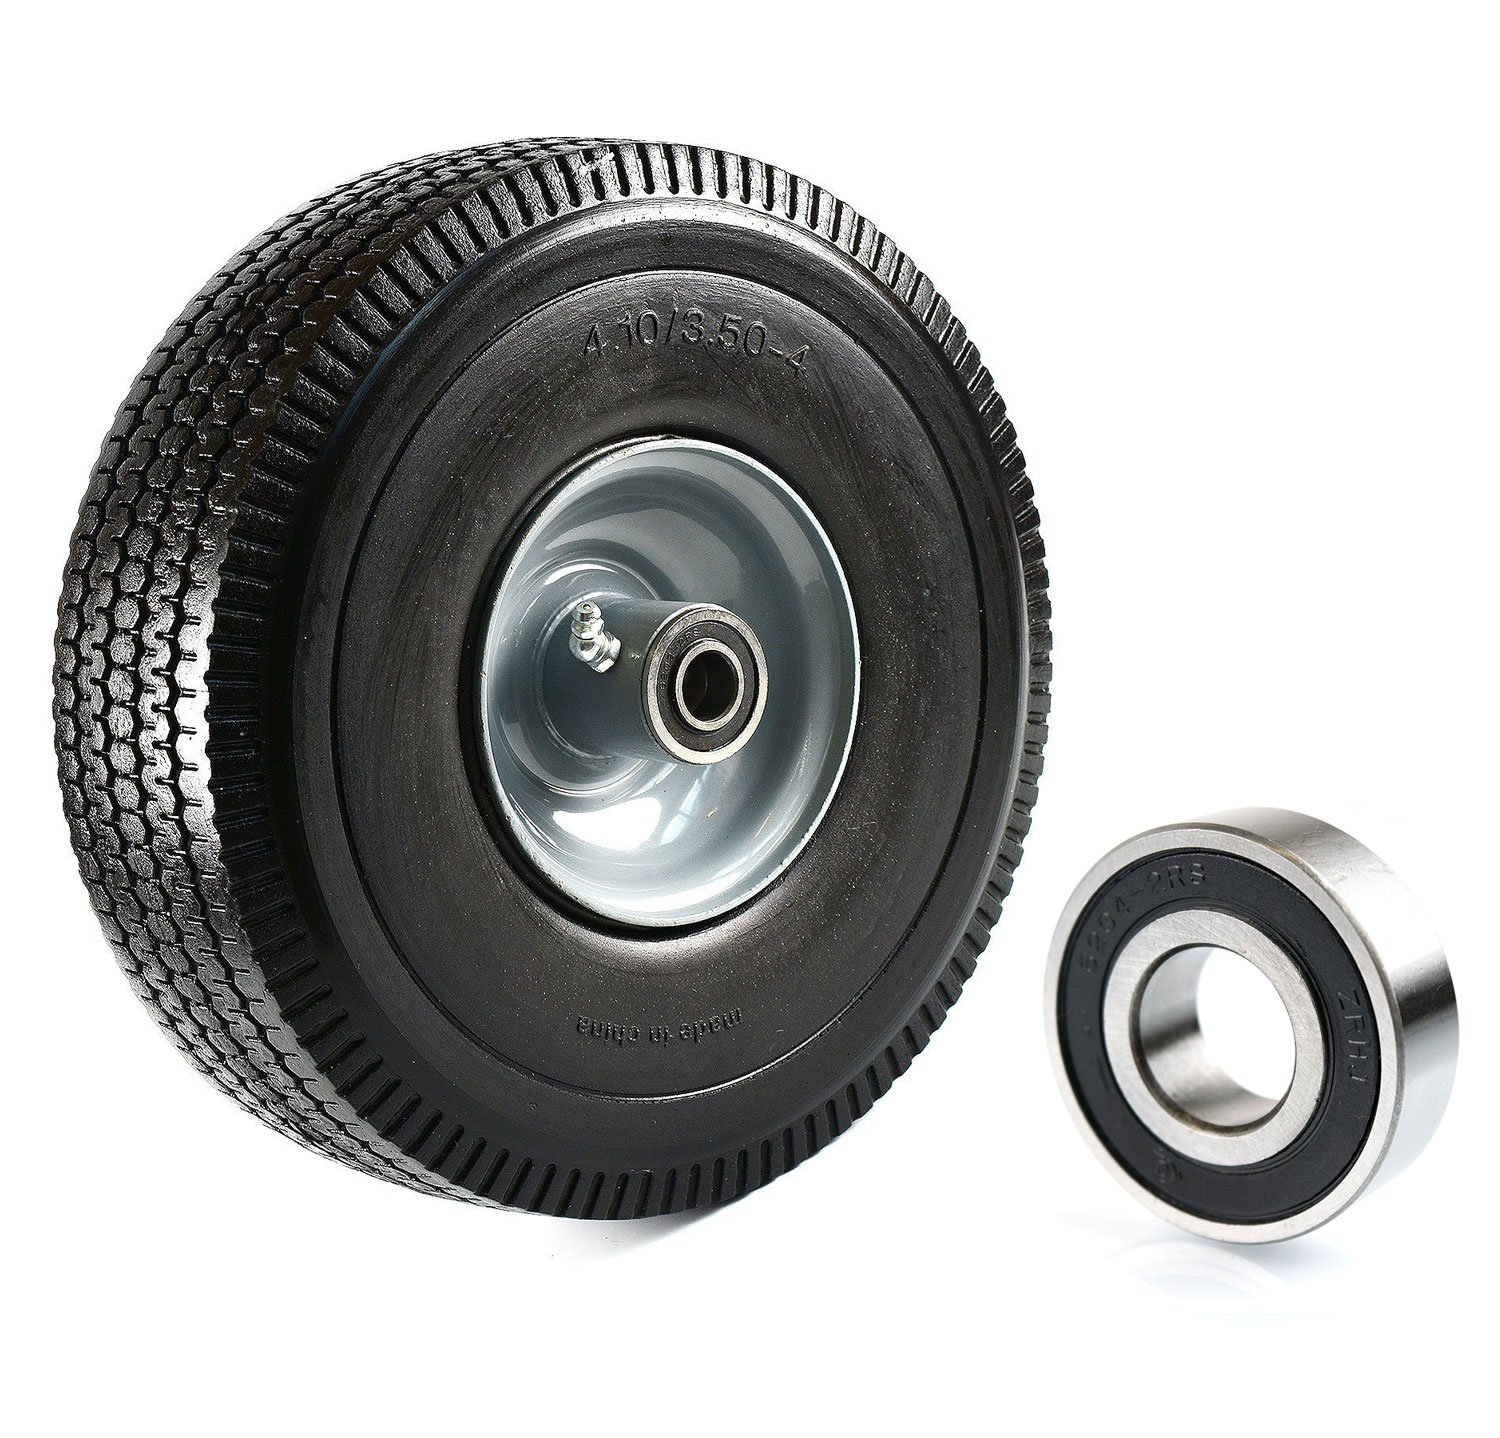 (Set of 2) NK Heavy Duty Solid Rubber Flat Free Tubeless Hand Truck/Utility Tire Wheel, 4.10/3.50-4'' Tire, 2-1/4'' Offset Hub, 5/8'' Bearing With 2 Bearing